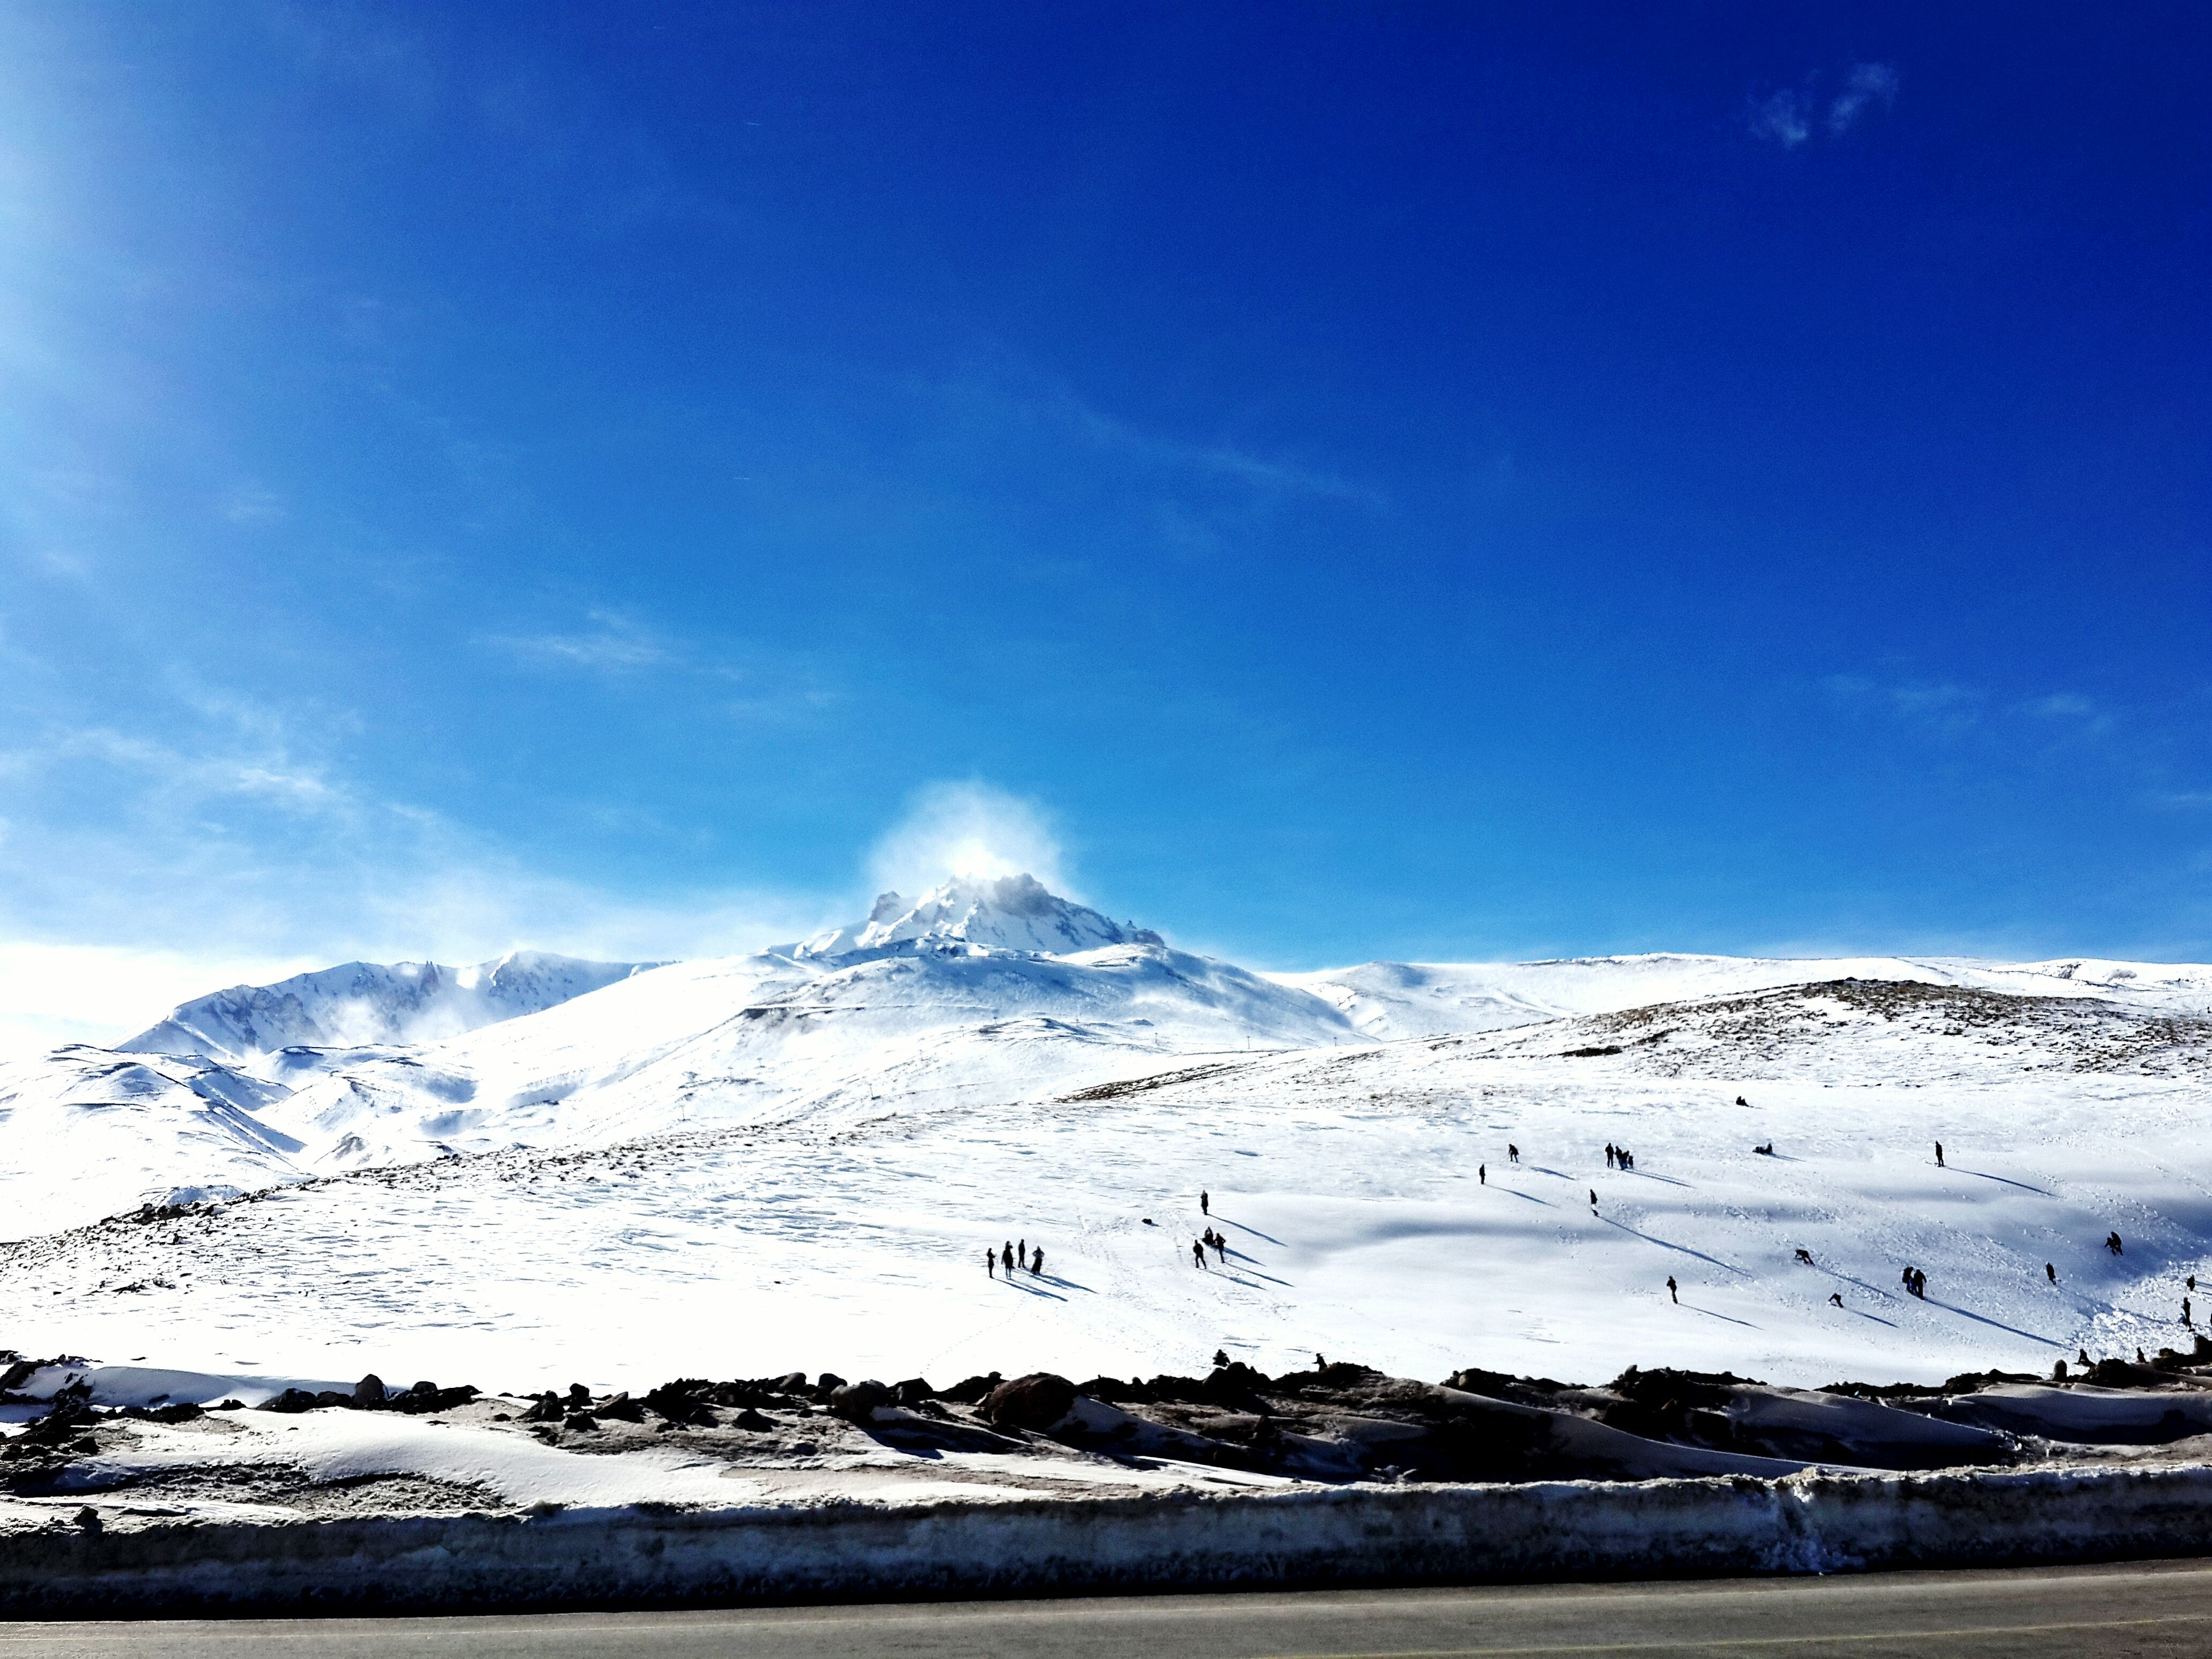 snow, mountain, winter, cold temperature, snowcapped mountain, mountain range, season, scenics, tranquil scene, beauty in nature, landscape, tranquility, blue, sky, nature, weather, covering, non-urban scene, snowcapped, sunlight